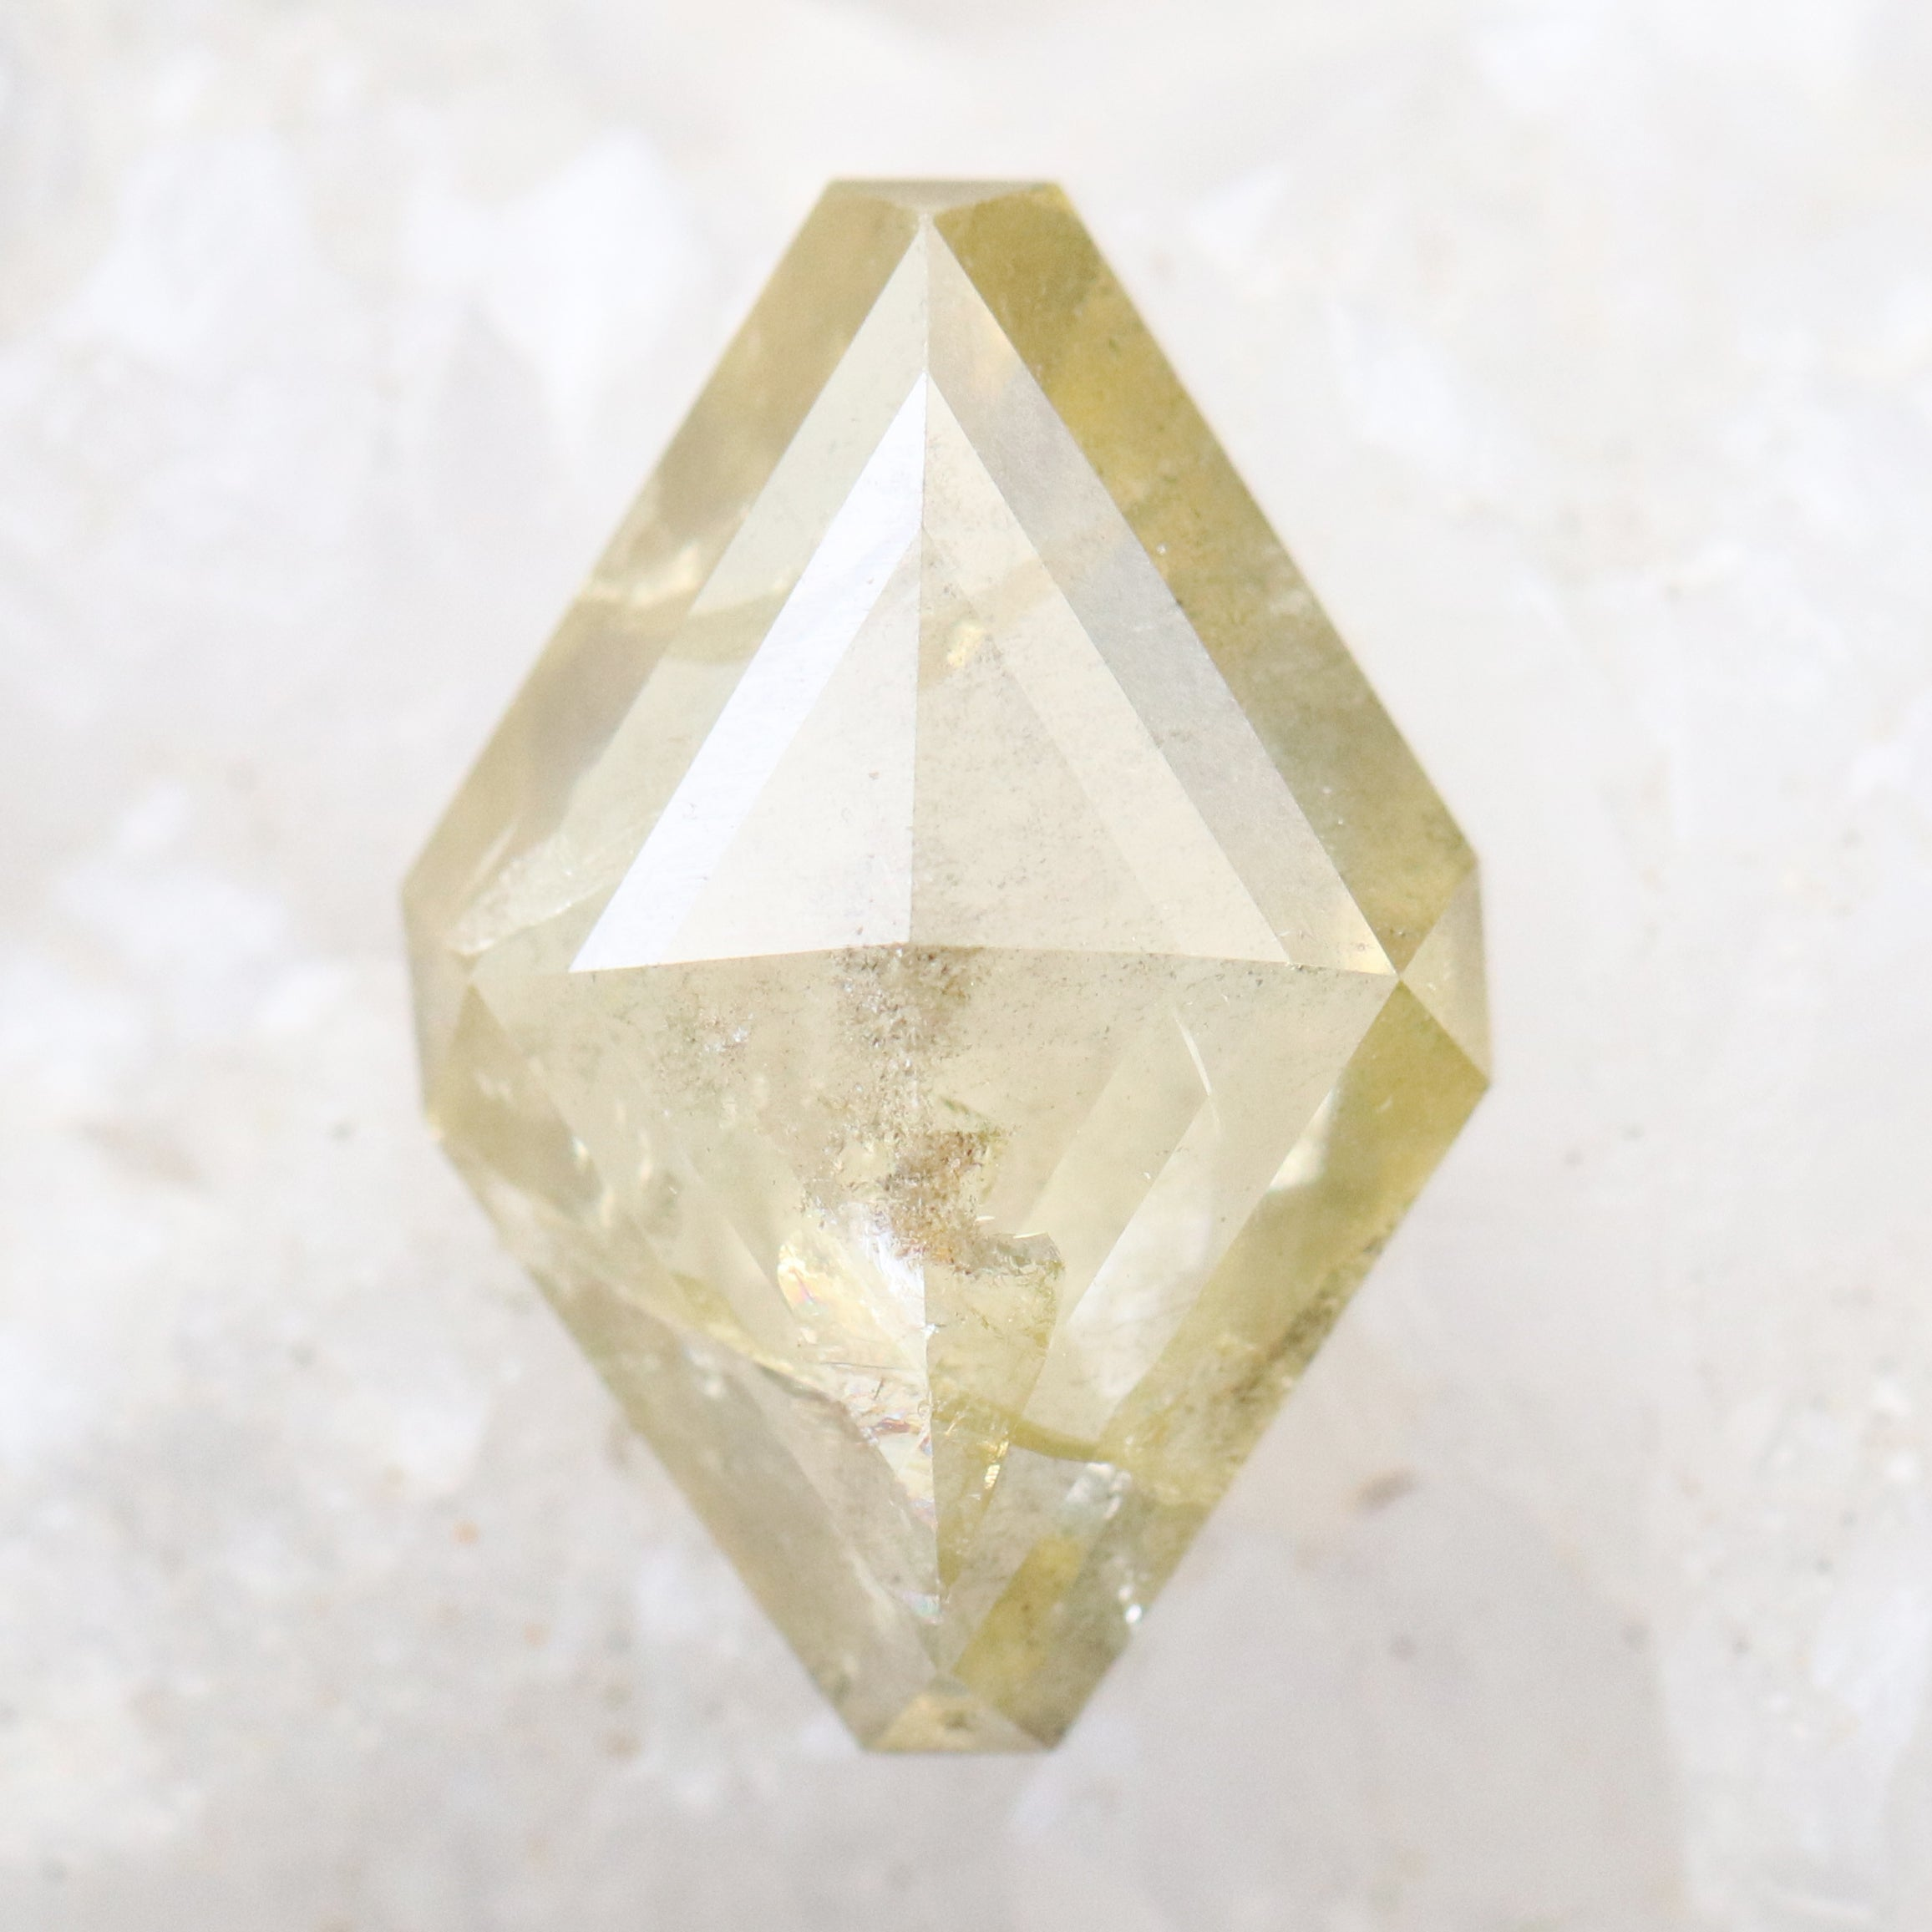 3.70 carat 13 x 9mm champagne yellow celestial diamond for custom work in geometric kite shape rose cut - inventory code YGR370 - MG - Salt & Pepper Celestial Diamond Engagement Rings and Wedding Bands  by Midwinter Co.